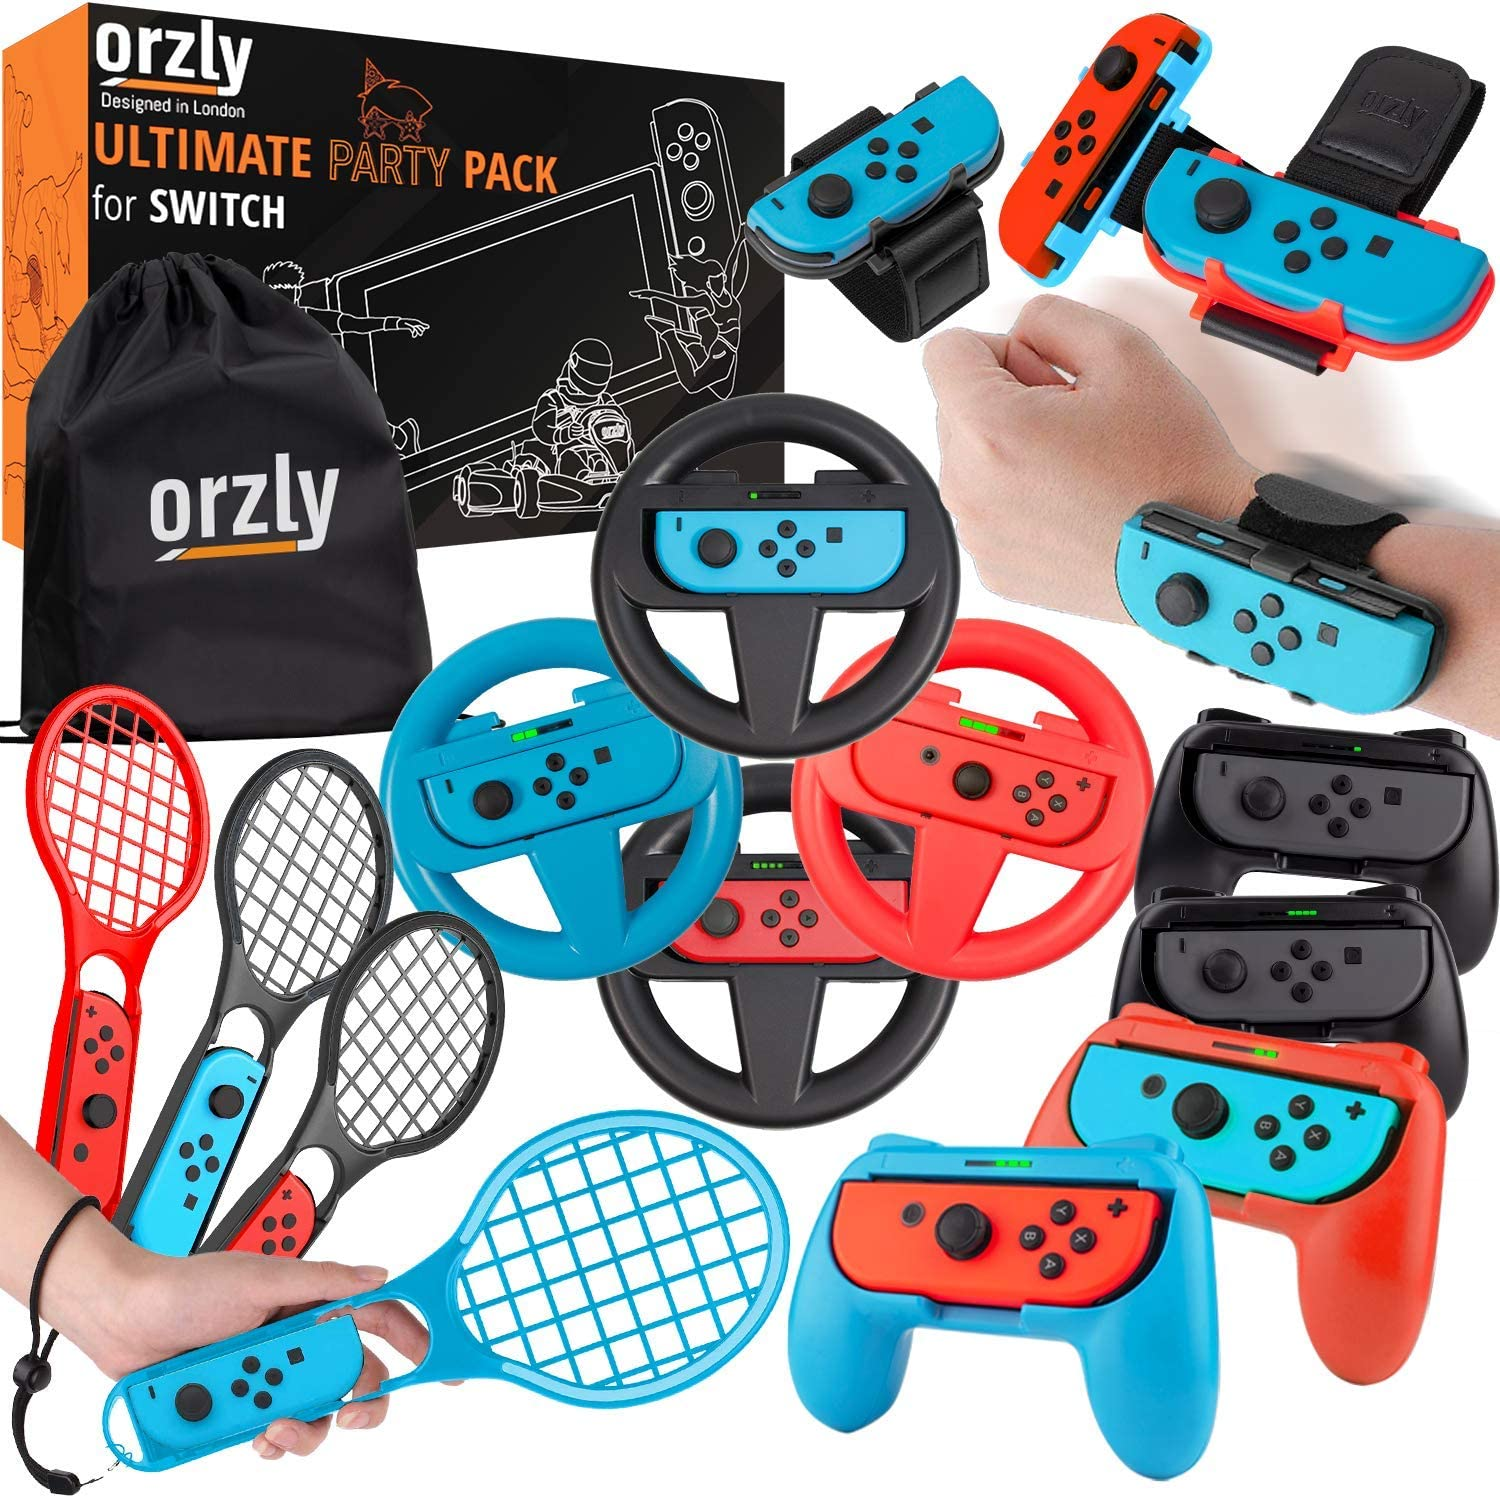 Orzly Party Pack Accessories Bundle New popularity Sale SALE% OFF Designed Nintendo Switch for